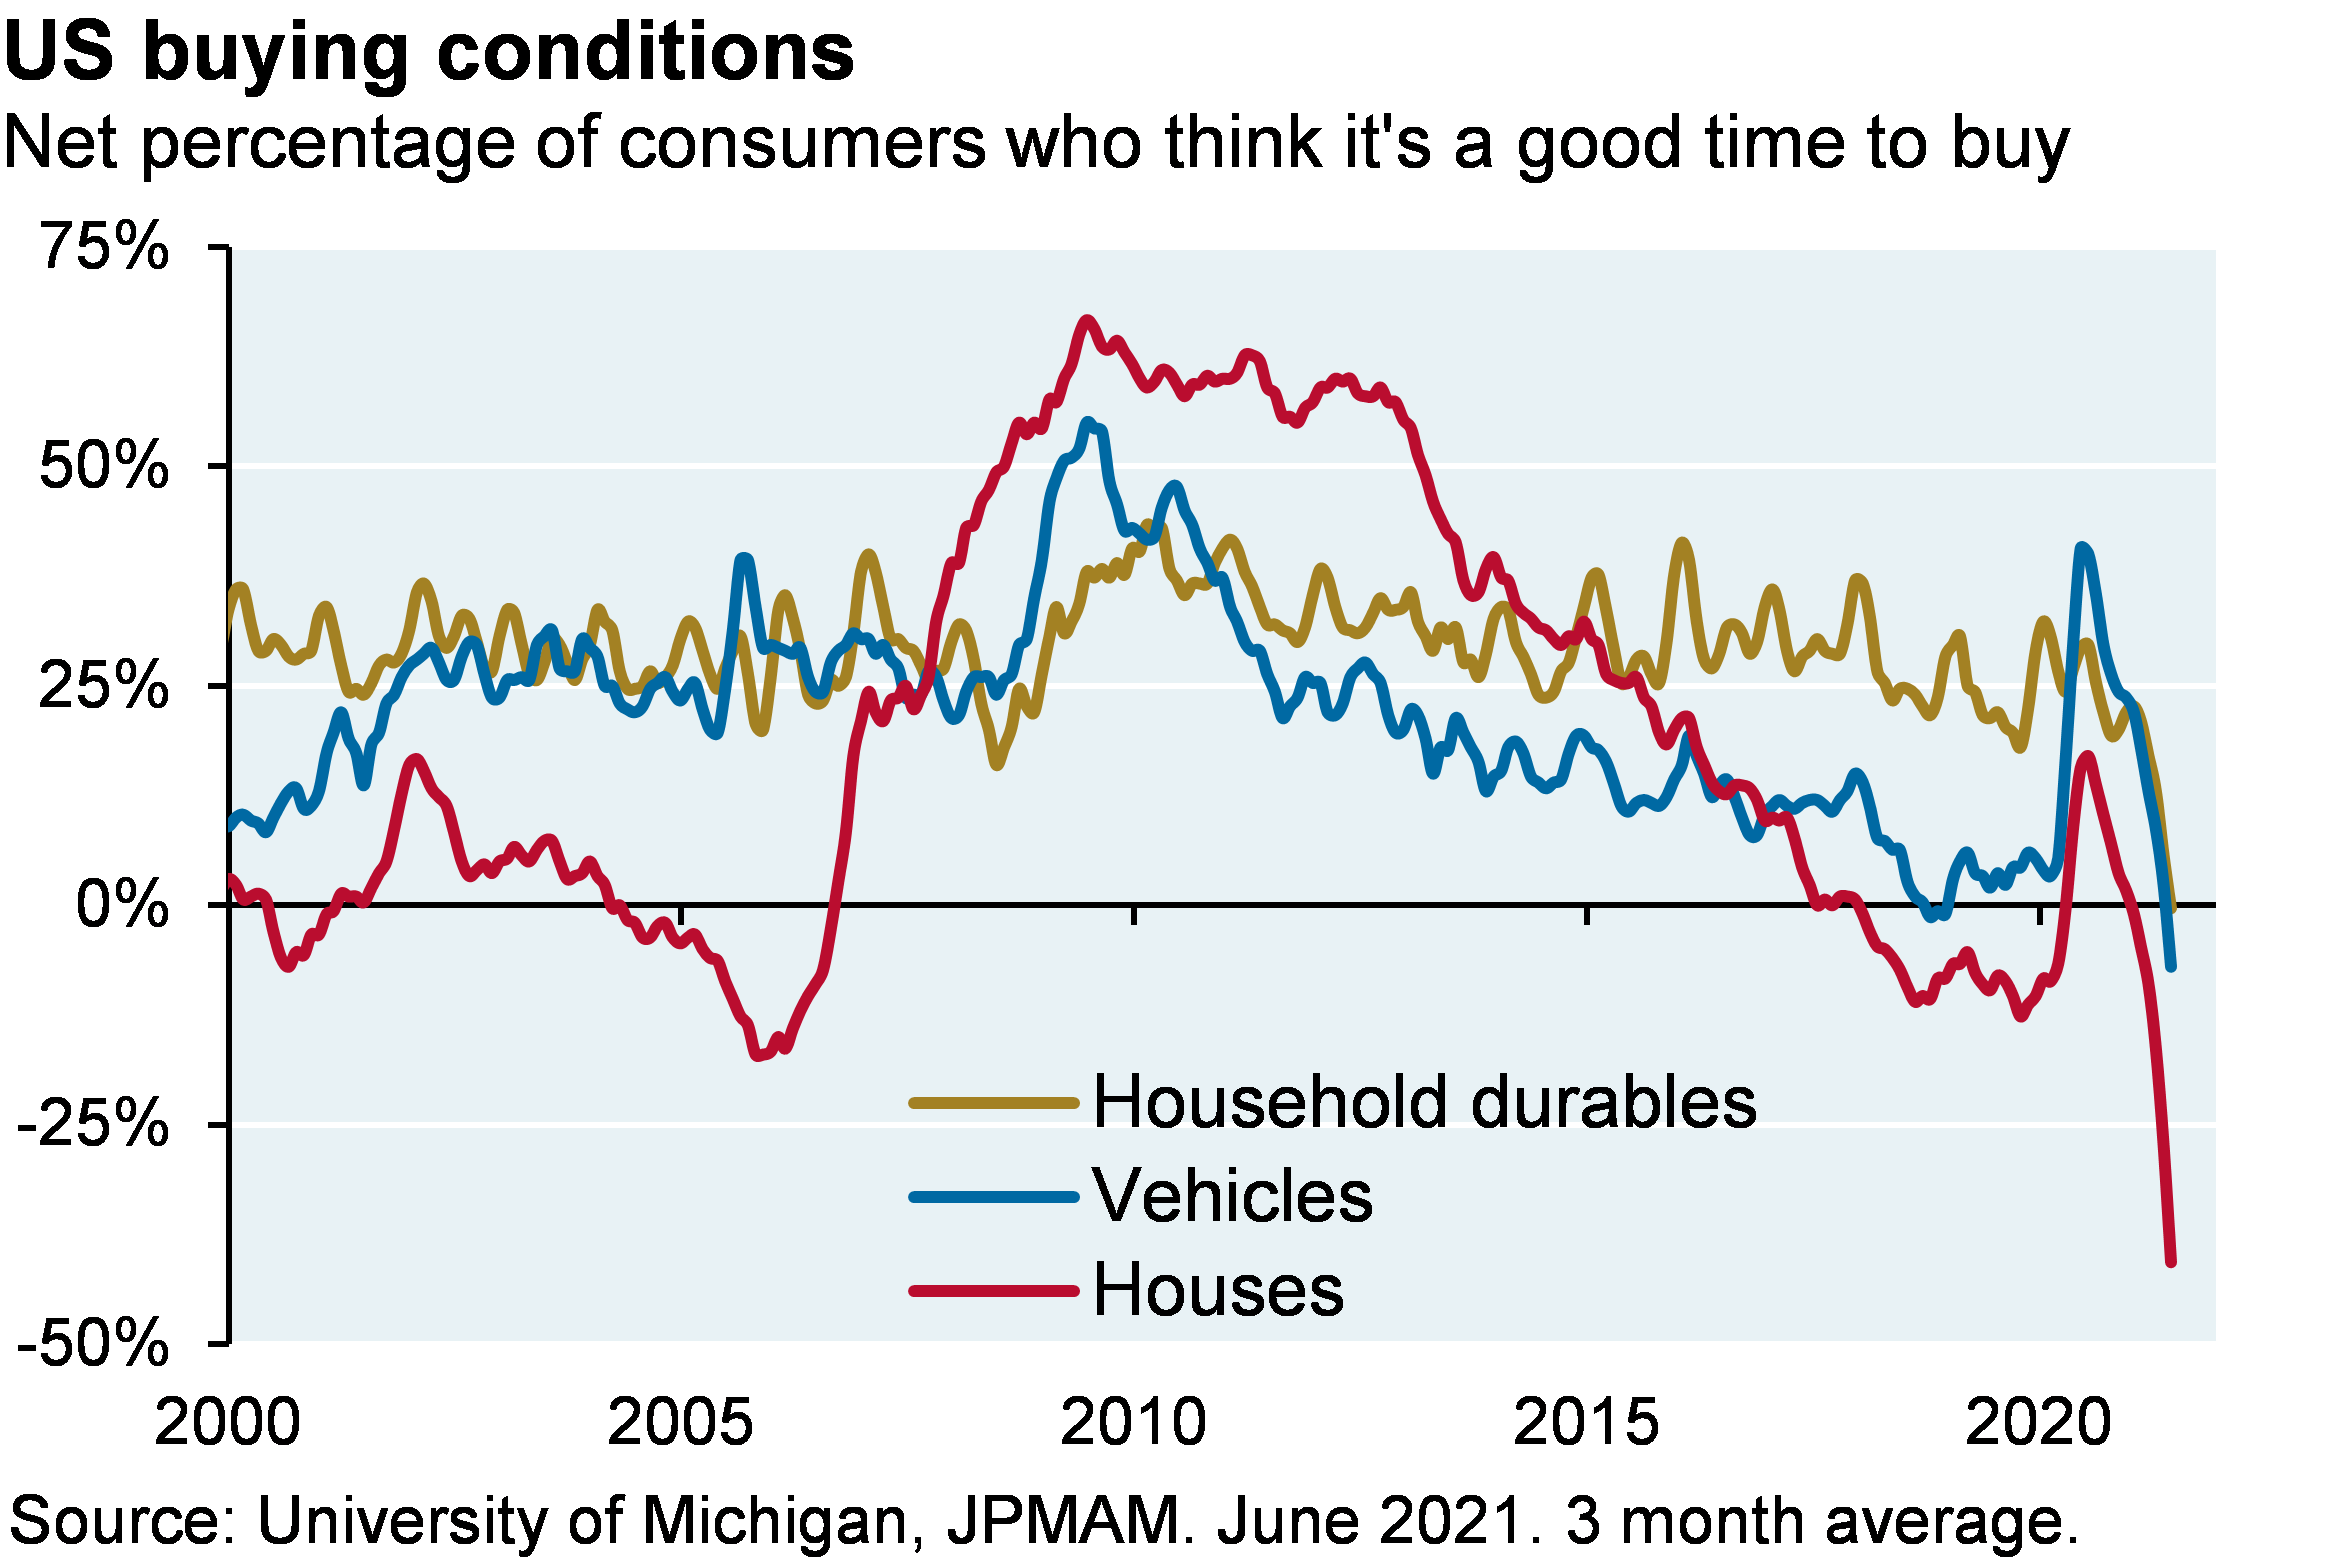 Line chart shows US buying conditions since 2000 for household durables, vehicles, and houses, shown as the net percentage of consumers who think it's a good time to buy. US buying conditions for all series are close to their all-time lows. The net percentage of consumers who think it's a good time to buy houses is close to -40%, compared to -7% for vehicles and 0% for household durables.